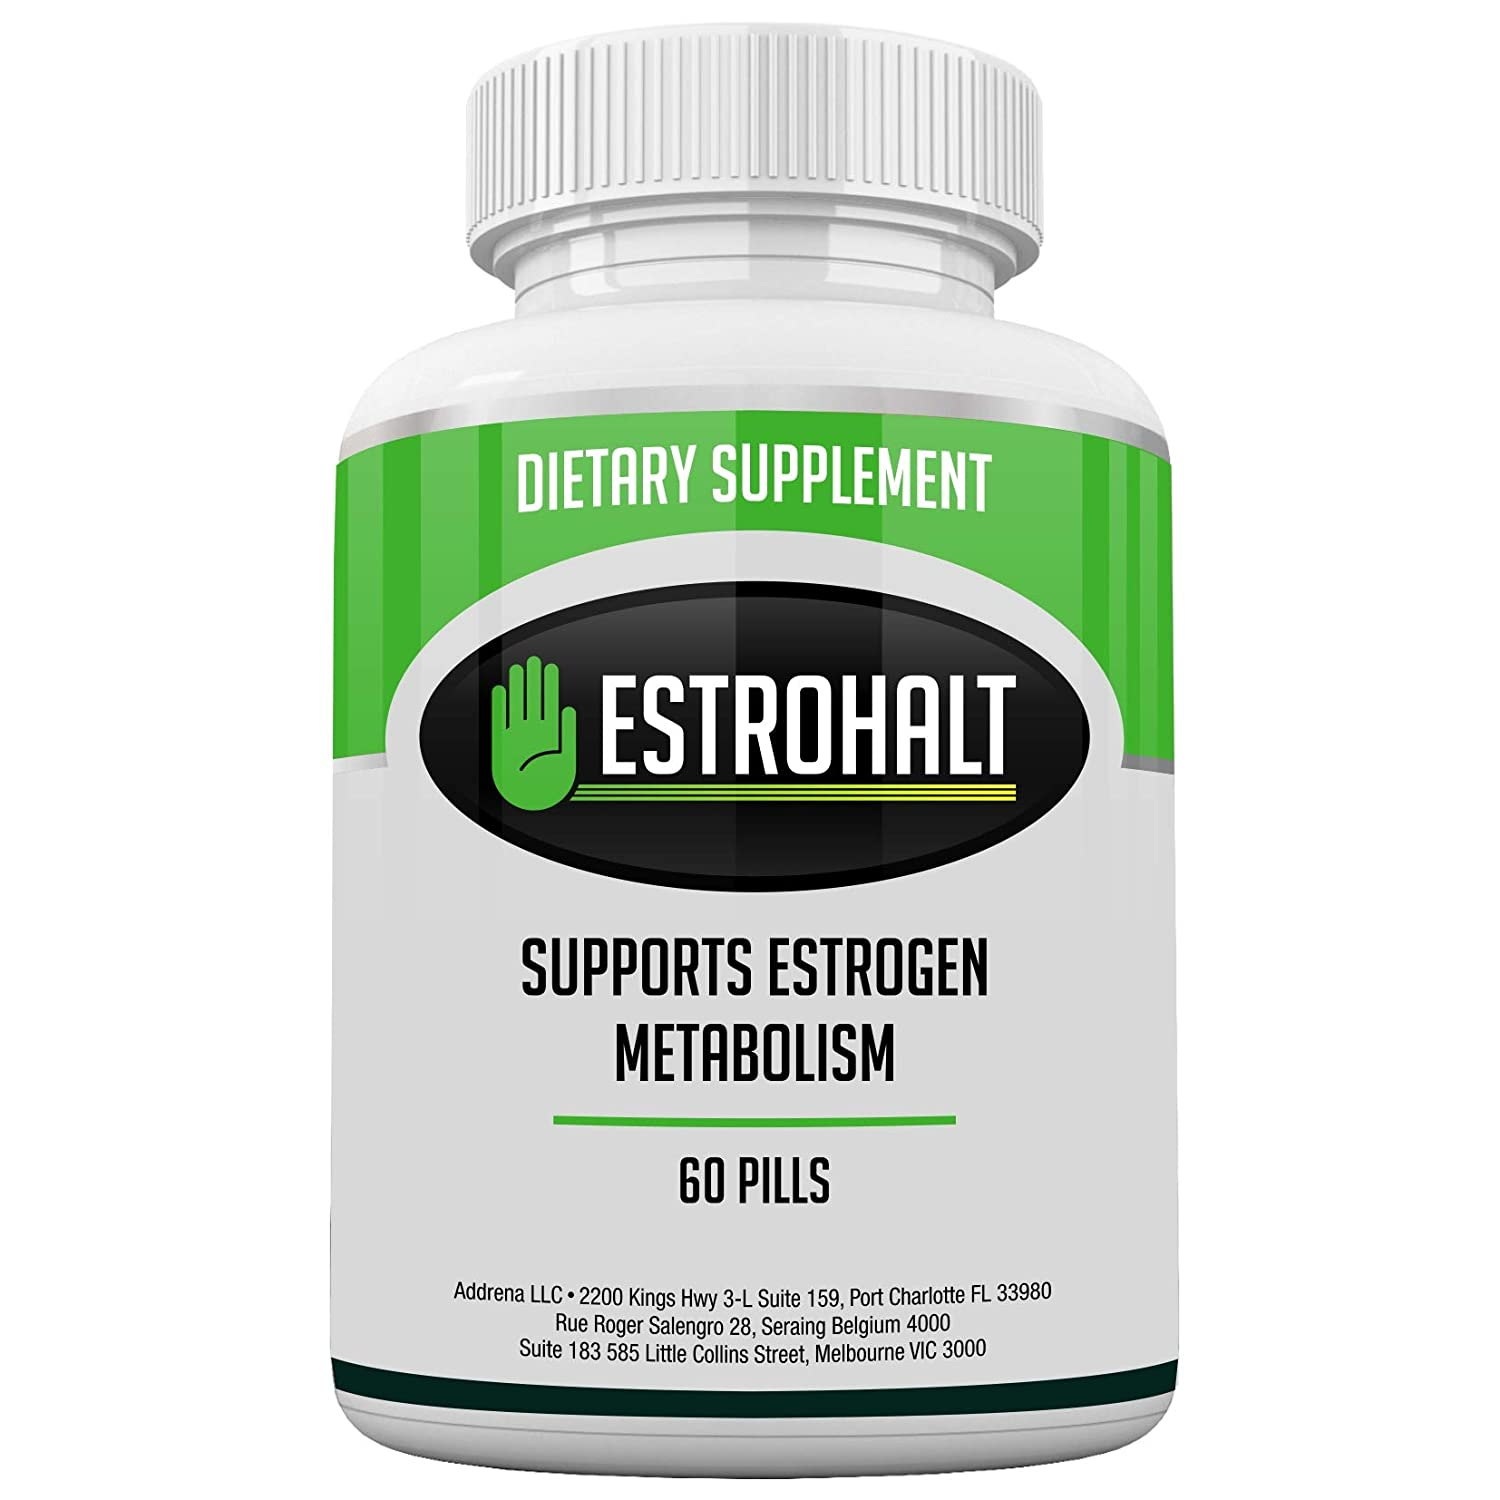 Estrohalt- DIM Supplement (Diindolylmethane) and Indole-3-Carbinol (I3C)  Best Estrogen Blocker Pills for Men & Women | Natural Aromatase Inhibitor